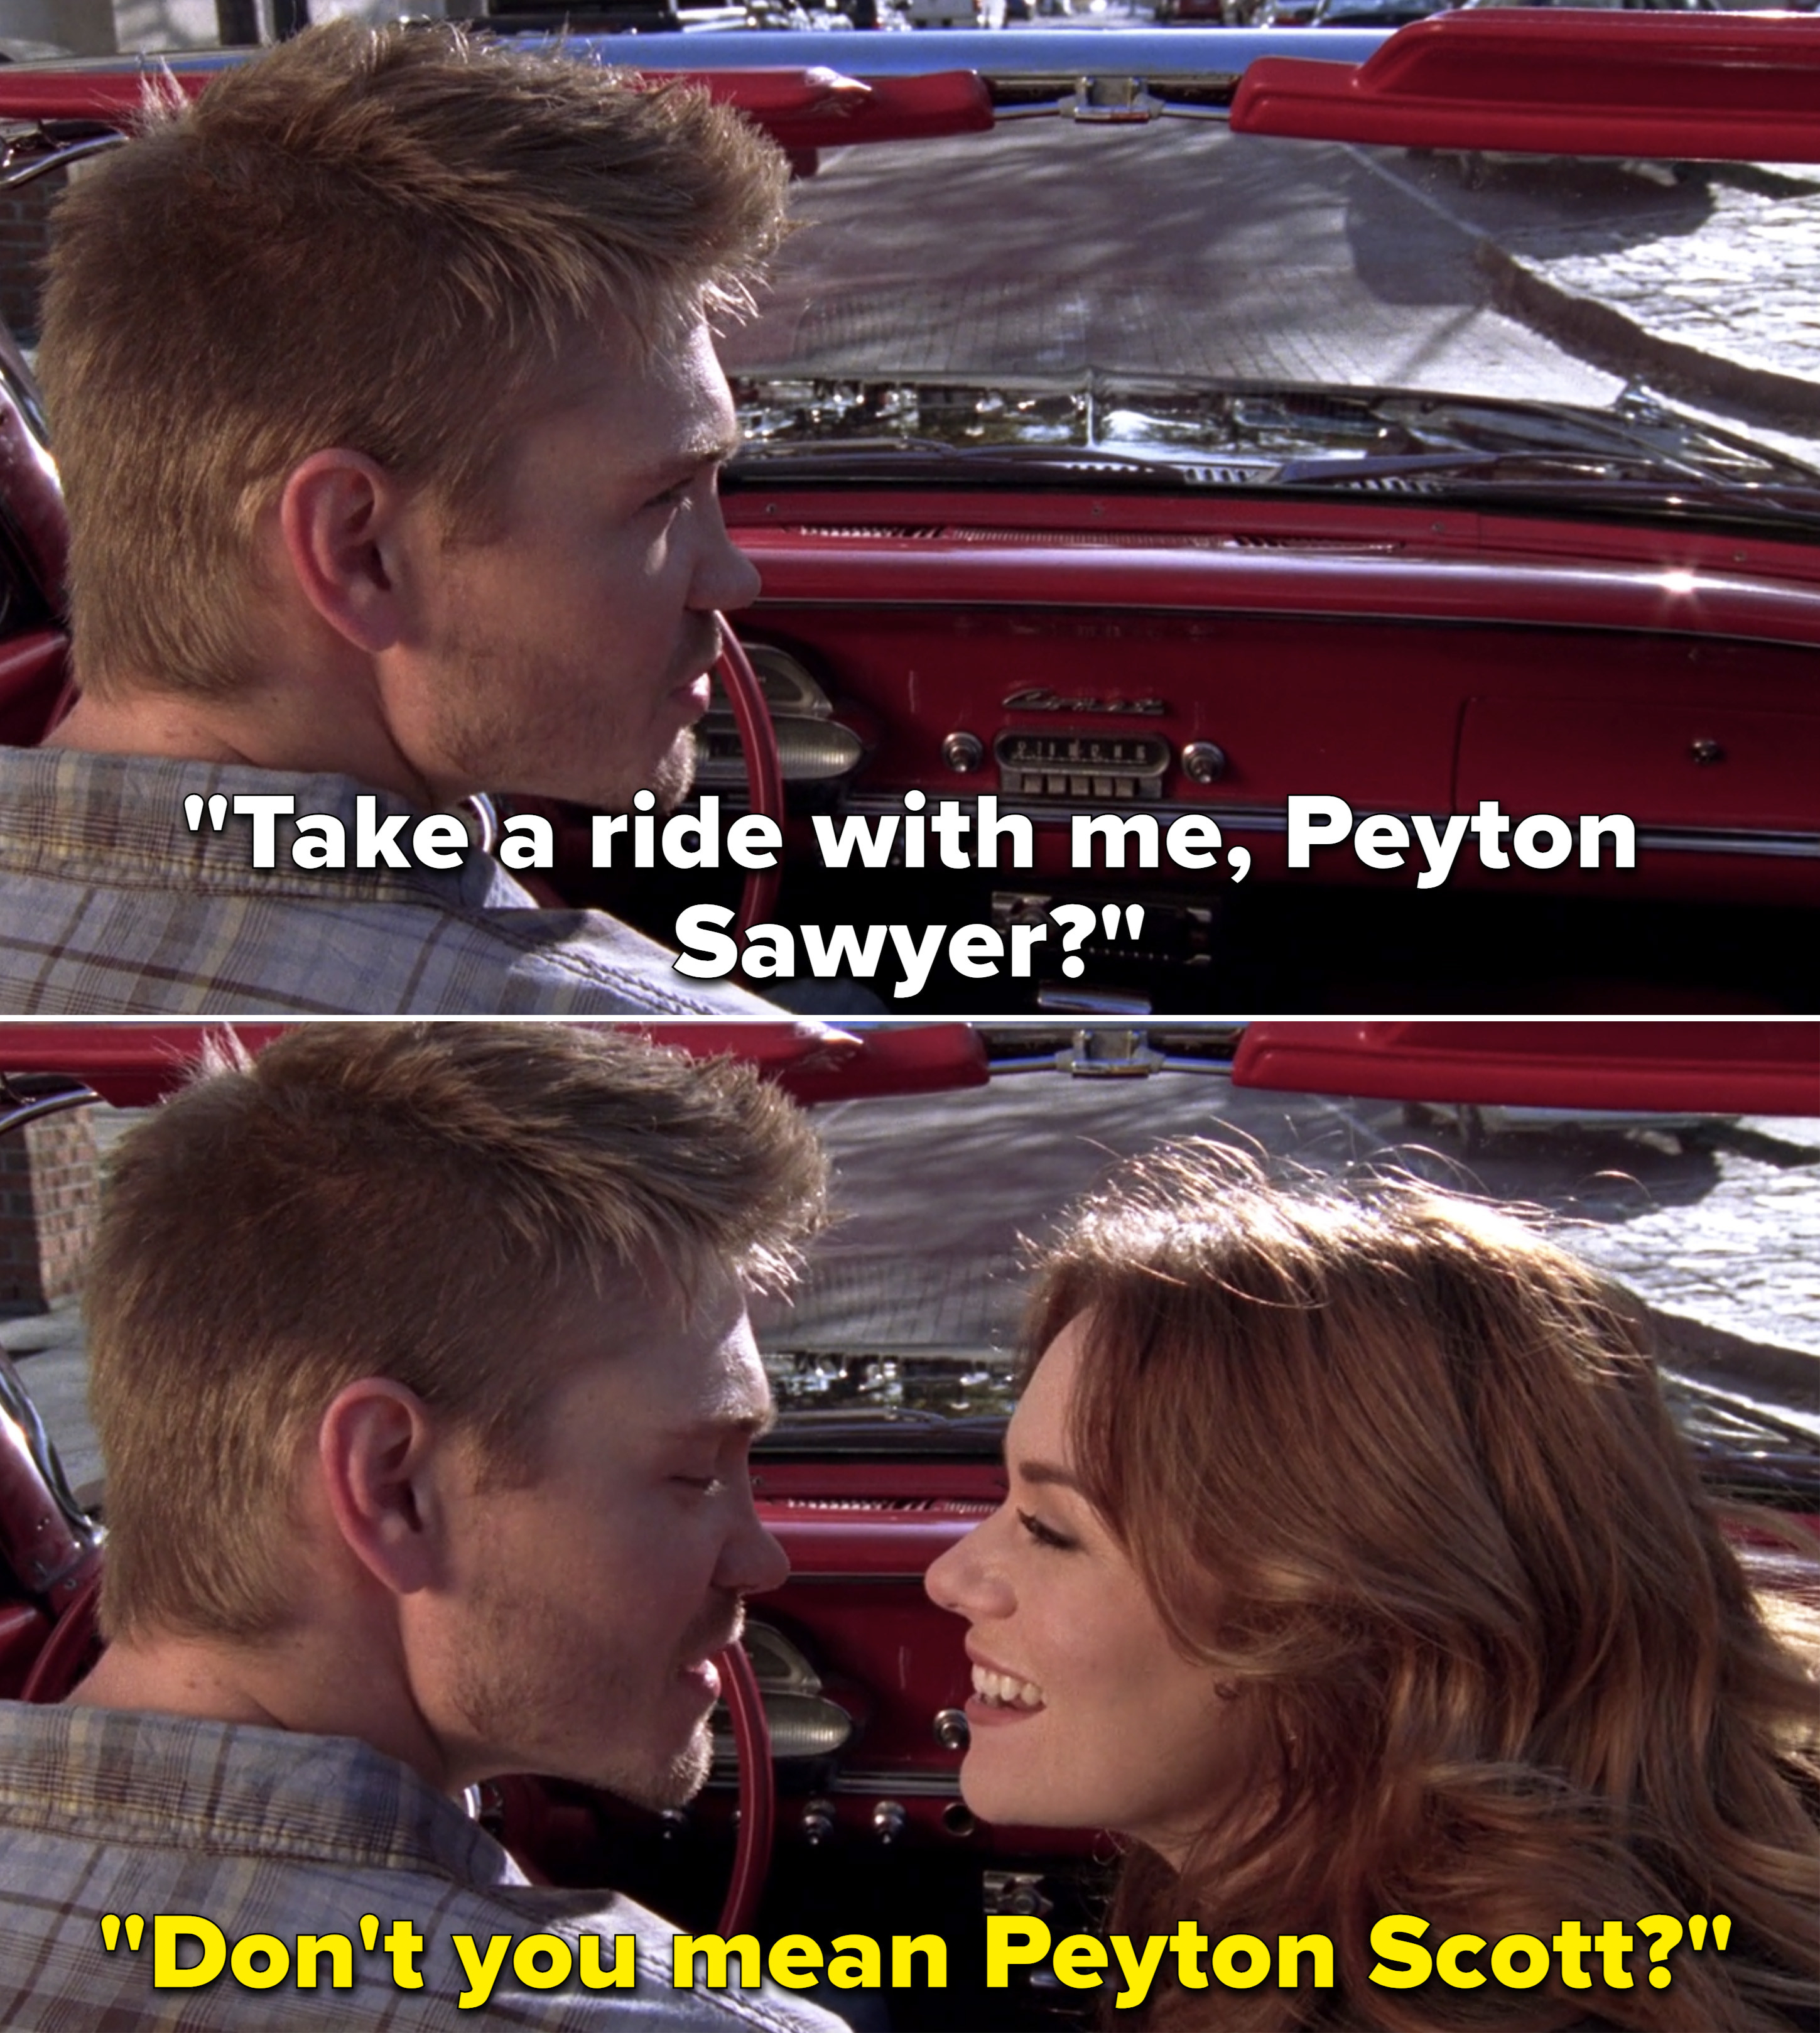 Peyton and Lucas in Peyton's car together getting ready to drive off